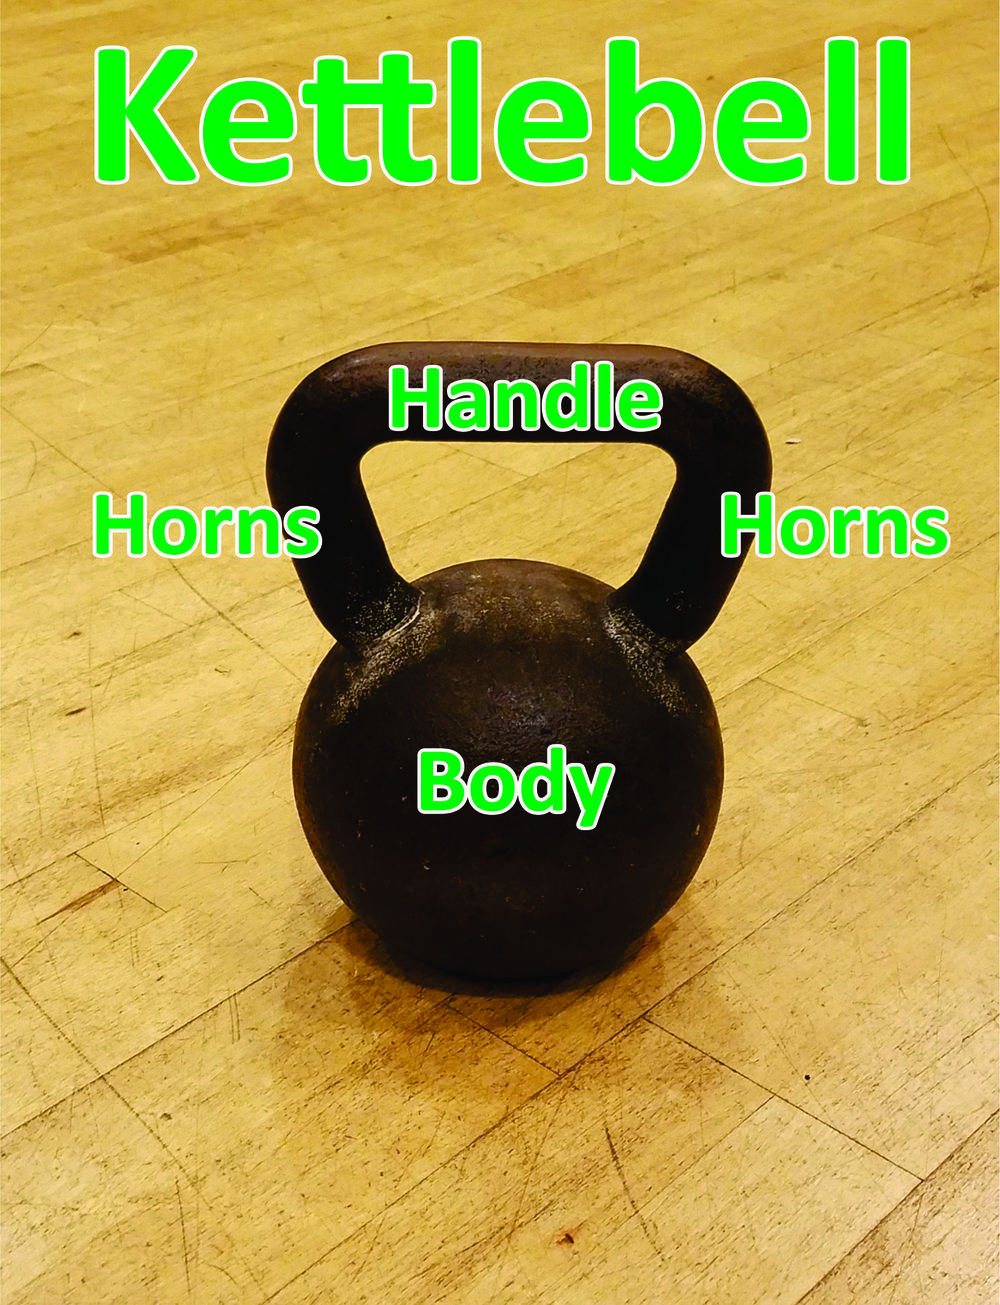 The kettlebell's unique body allows for an offset center of gravity to challenge the participant with many movements when compared to using dumbbells.